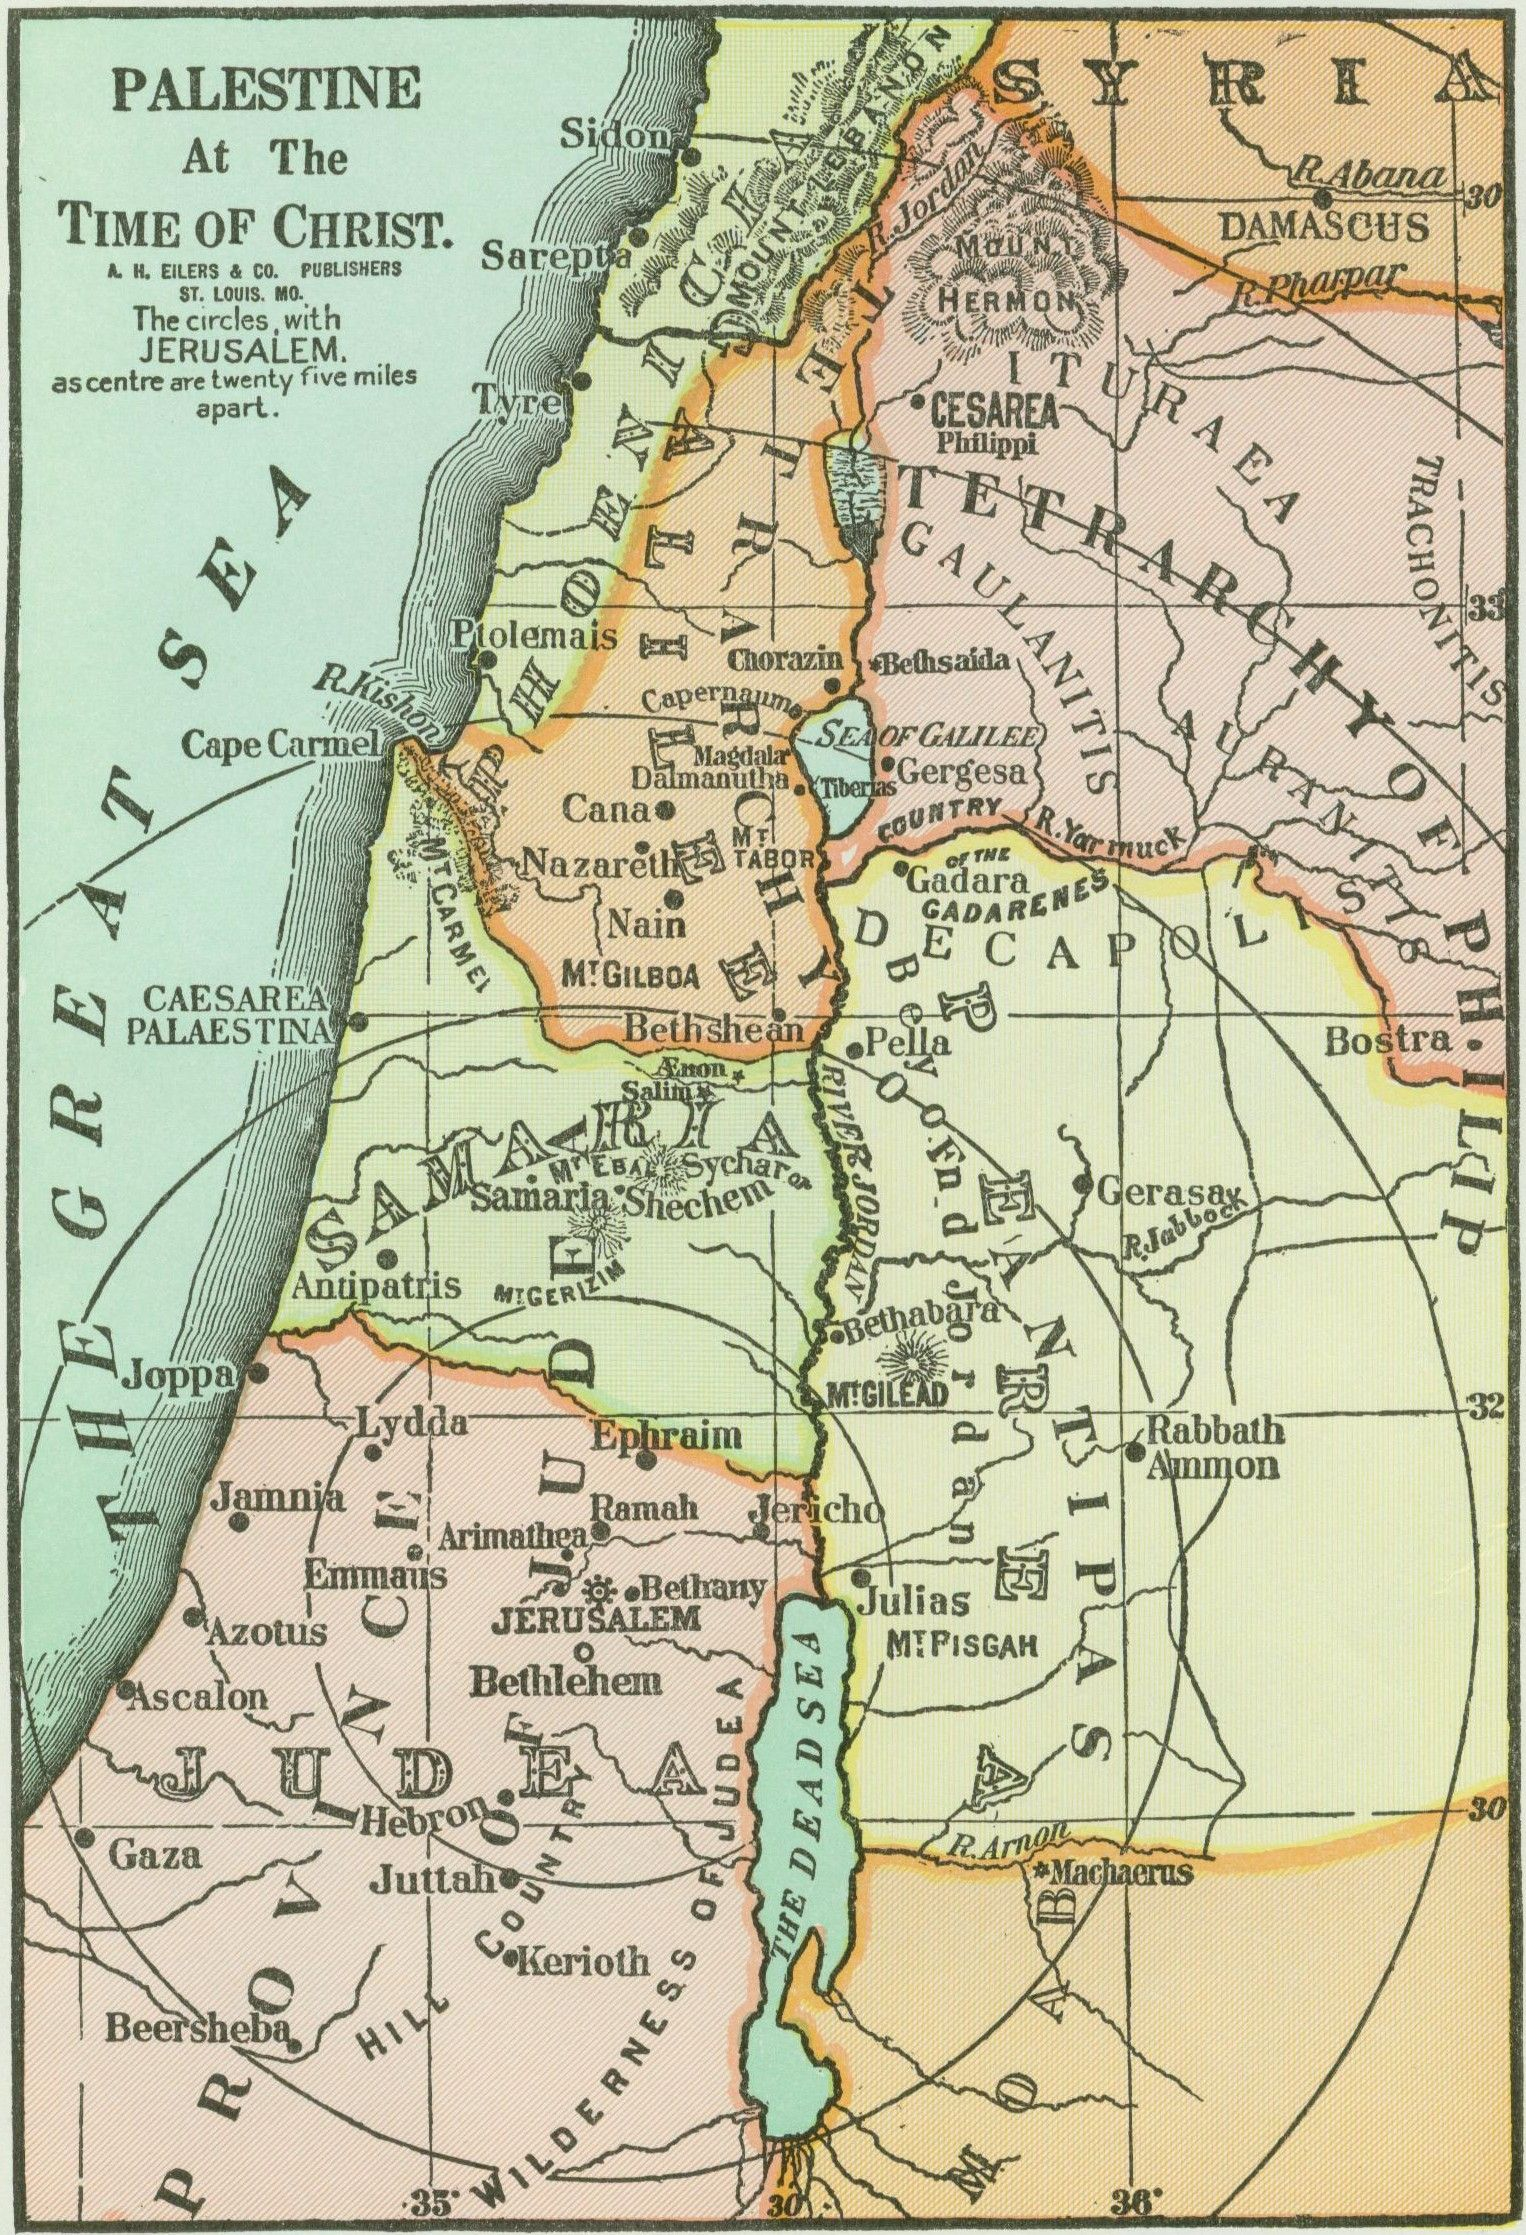 Map+of+Palestine+in+the+Time+of+Jesus | Palestine at the ... on at the temple of jerusalem in jesus time, map of wells in aguanga, large map of israel in jesus' time, map of nazareth in galilee, samaritans in jesus time, sea of galilee map jesus' time, houses in bethlehem in jesus time, map of jesus journey, capernaum in jesus time, map of jerusalem jesus time, map during jesus' time, palestine in christ's time, israel maps from jesus time, map of jesus travels, bethphage in jesus time, life during jesus' time, map holy land jesus' time, judea in jesus' time, map of cana in galilee, nazareth in jesus time,